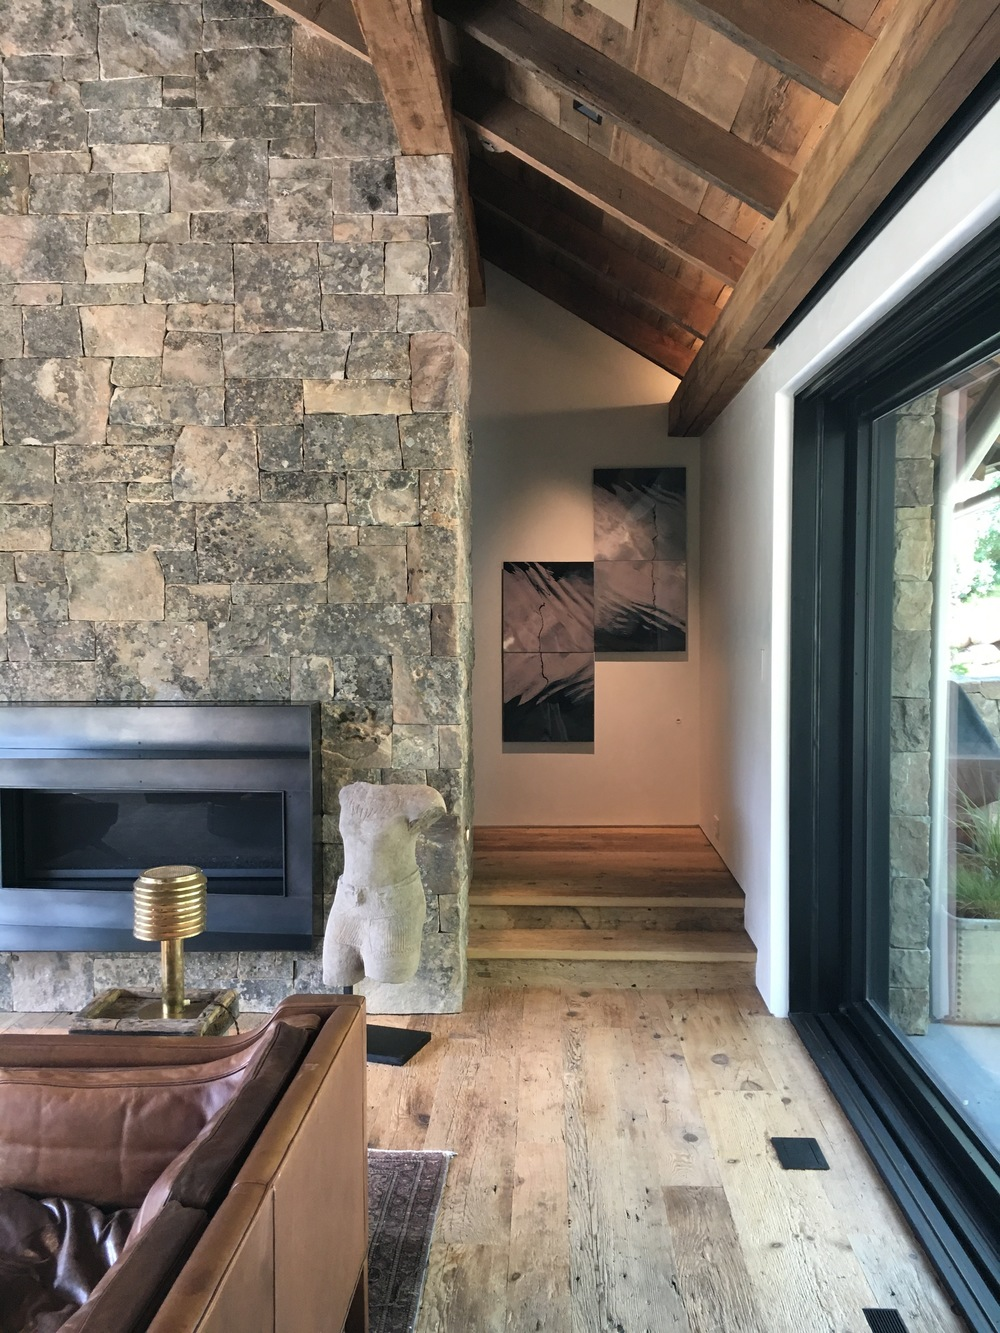 Installed at a private collector's home in Aspen, Colorado